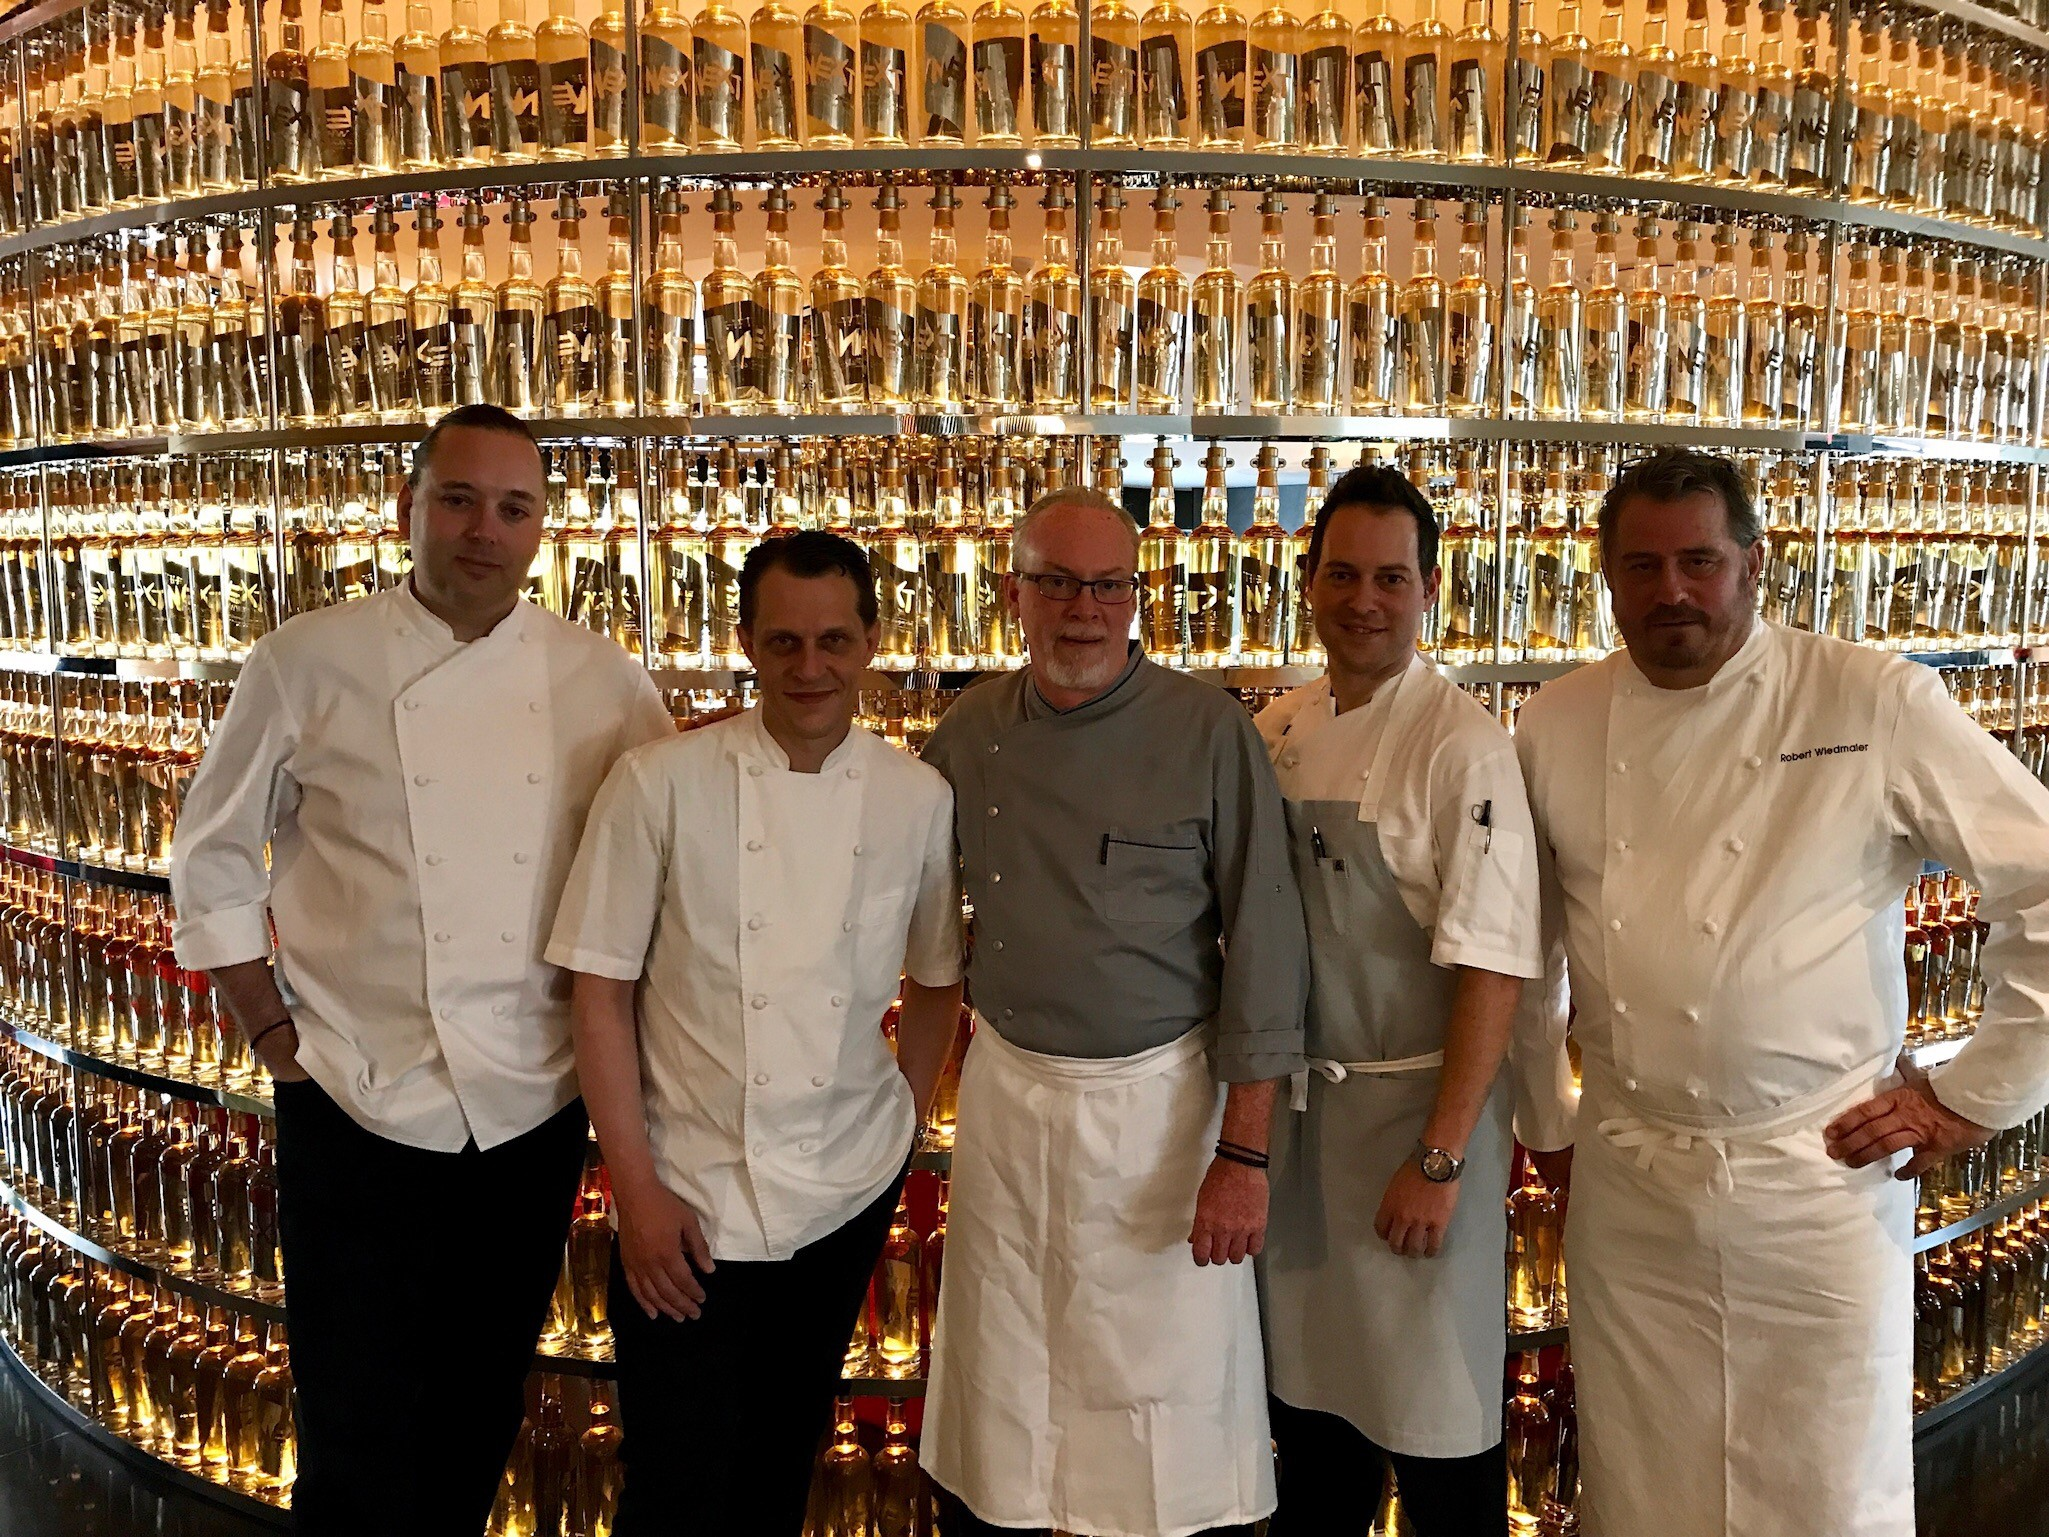 Chef Paul Liebrandt, Chef Michael Laiskonis, Chef Brian McBride, Chef Michael Santoro and Chef Robert Wiedmaier in front of The Next Whisky Bar. (Image: Courtesy The Watergate Hotel)